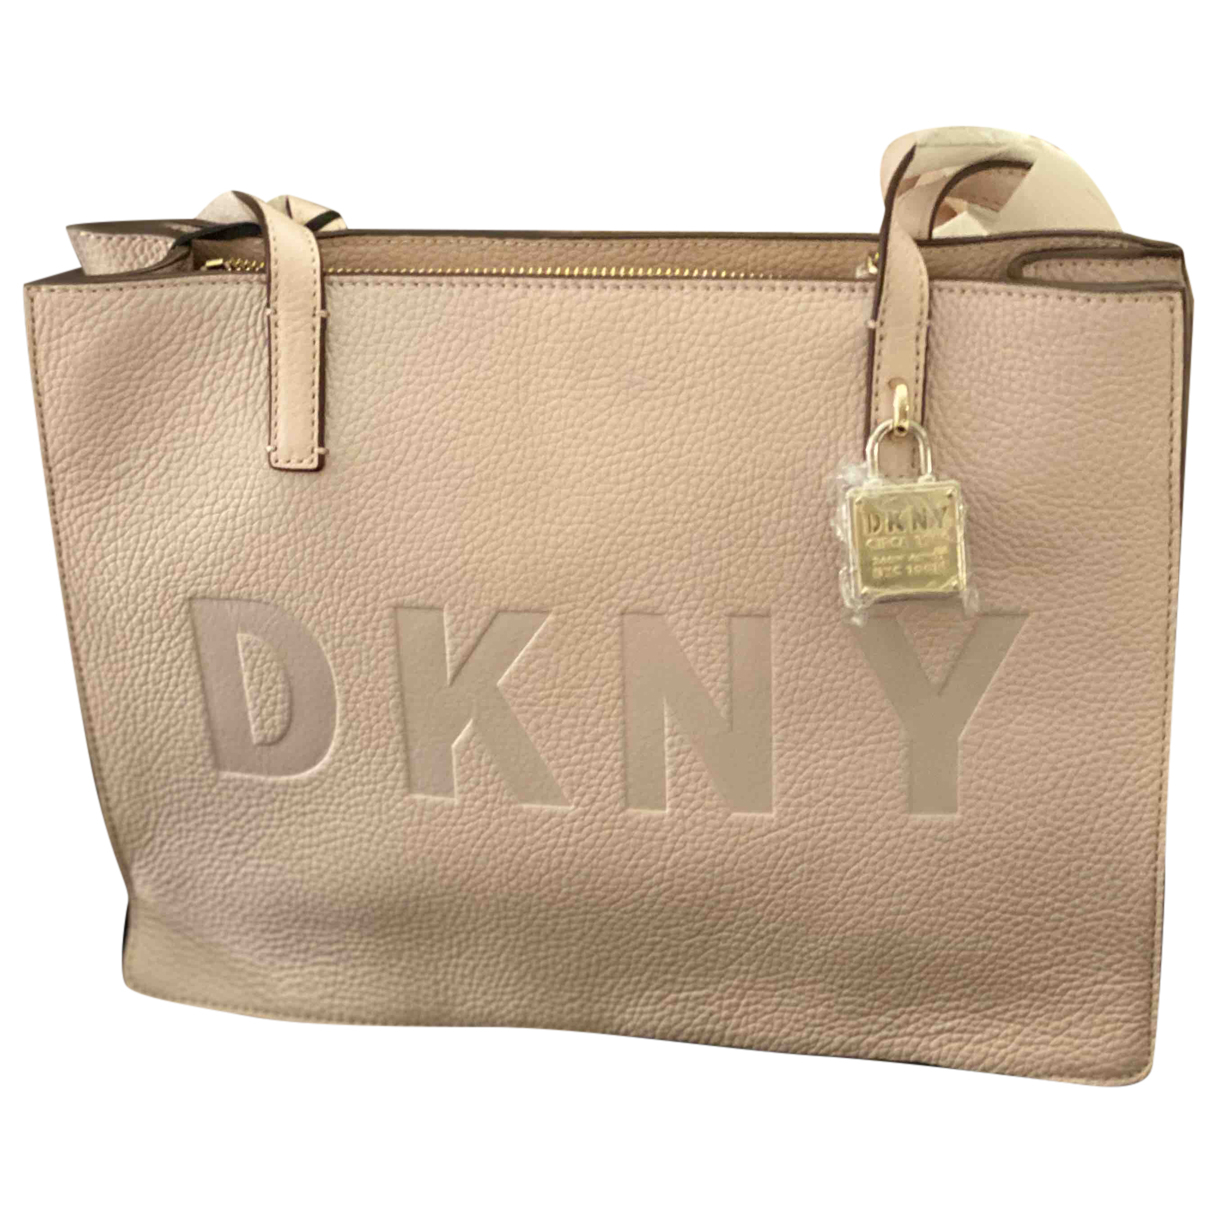 Dkny N Pink Leather handbag for Women N